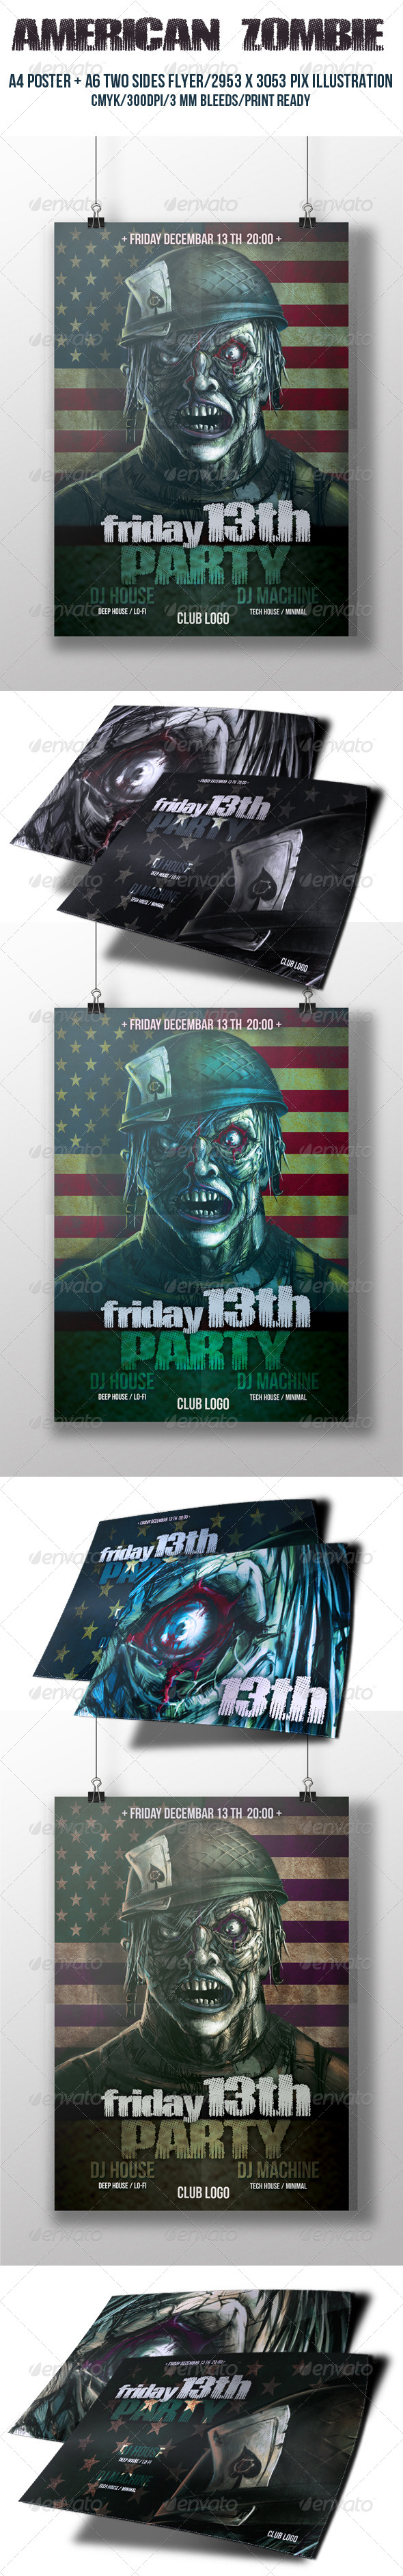 American Zombie Poster - Events Flyers